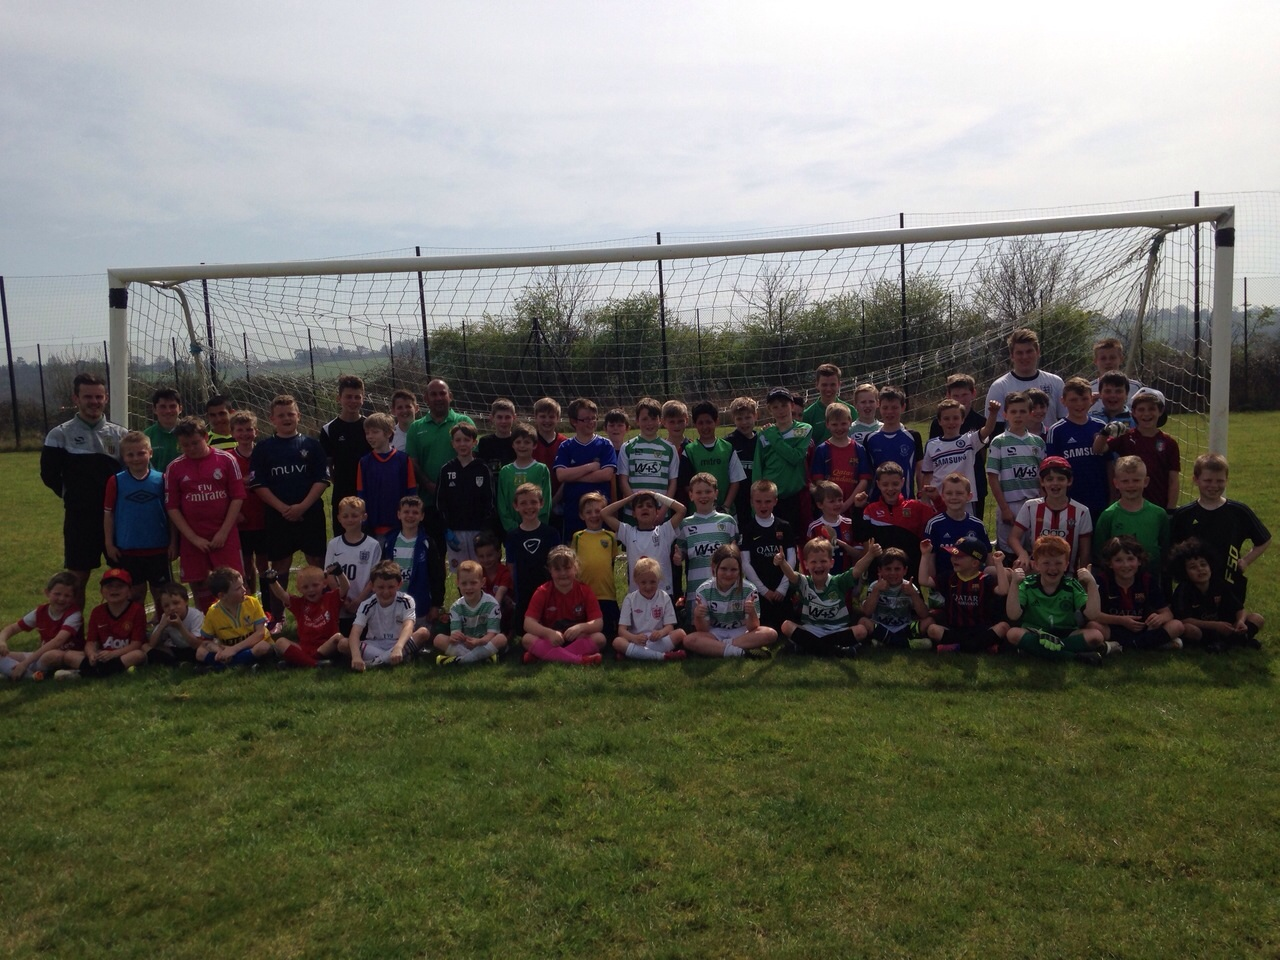 EGGS-CELLENT WEATHER FOR SOCCER SCHOOL